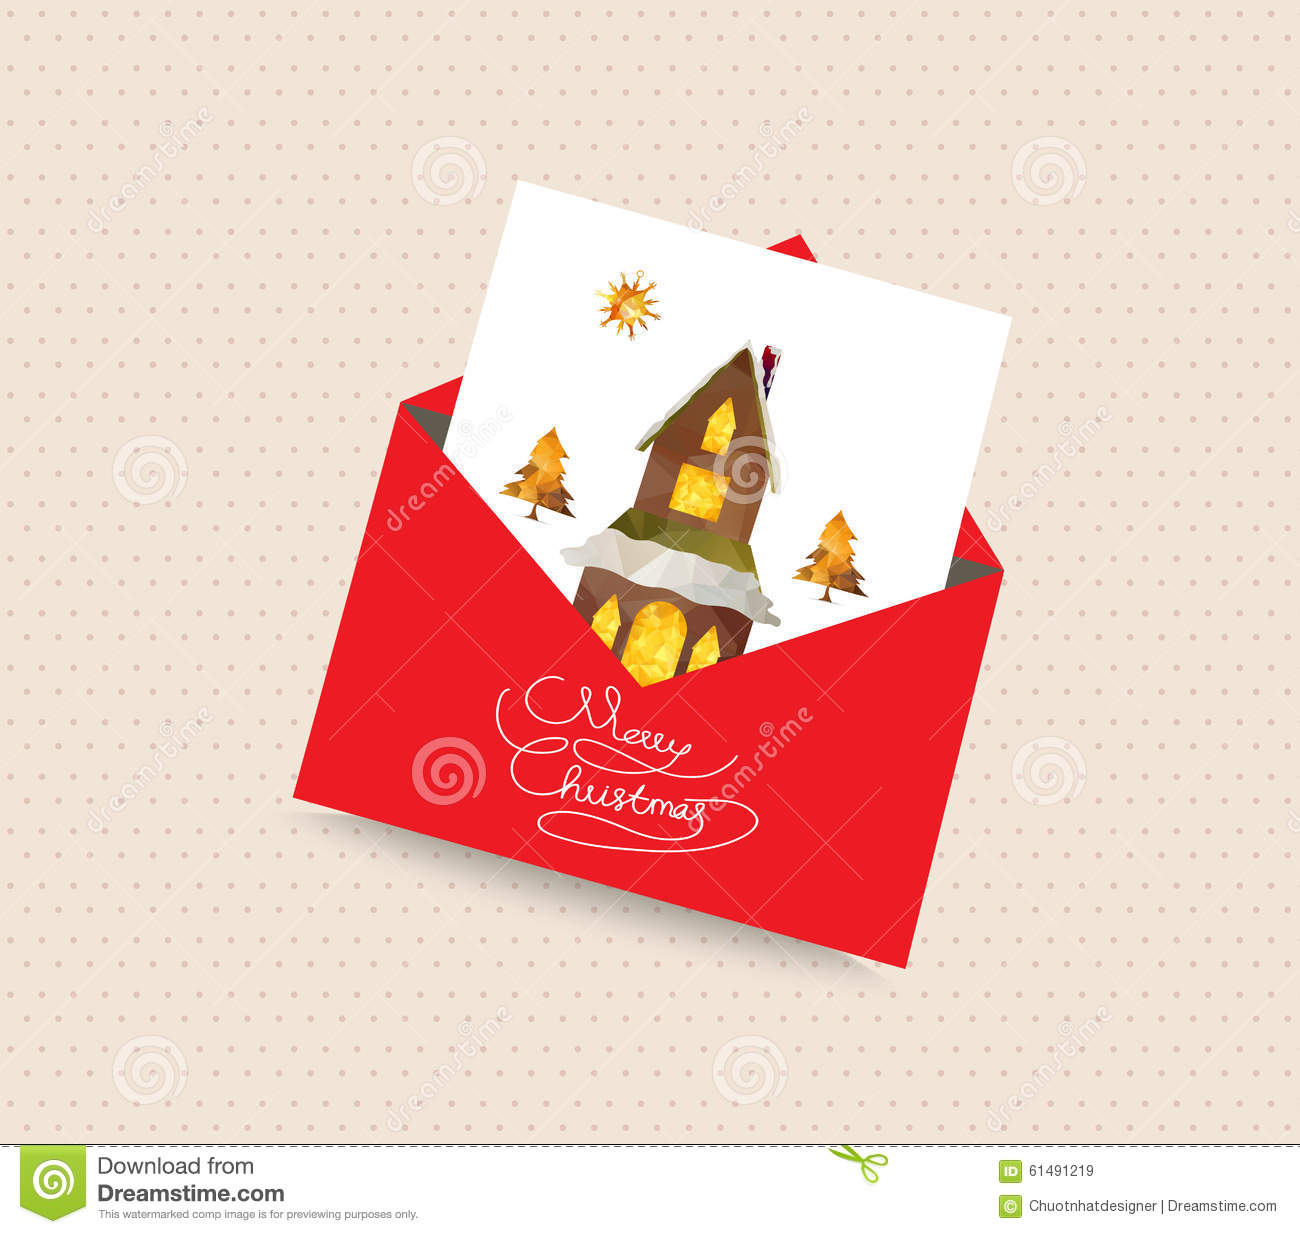 Merry Christmas Greeting Card With Envelope House And Tree